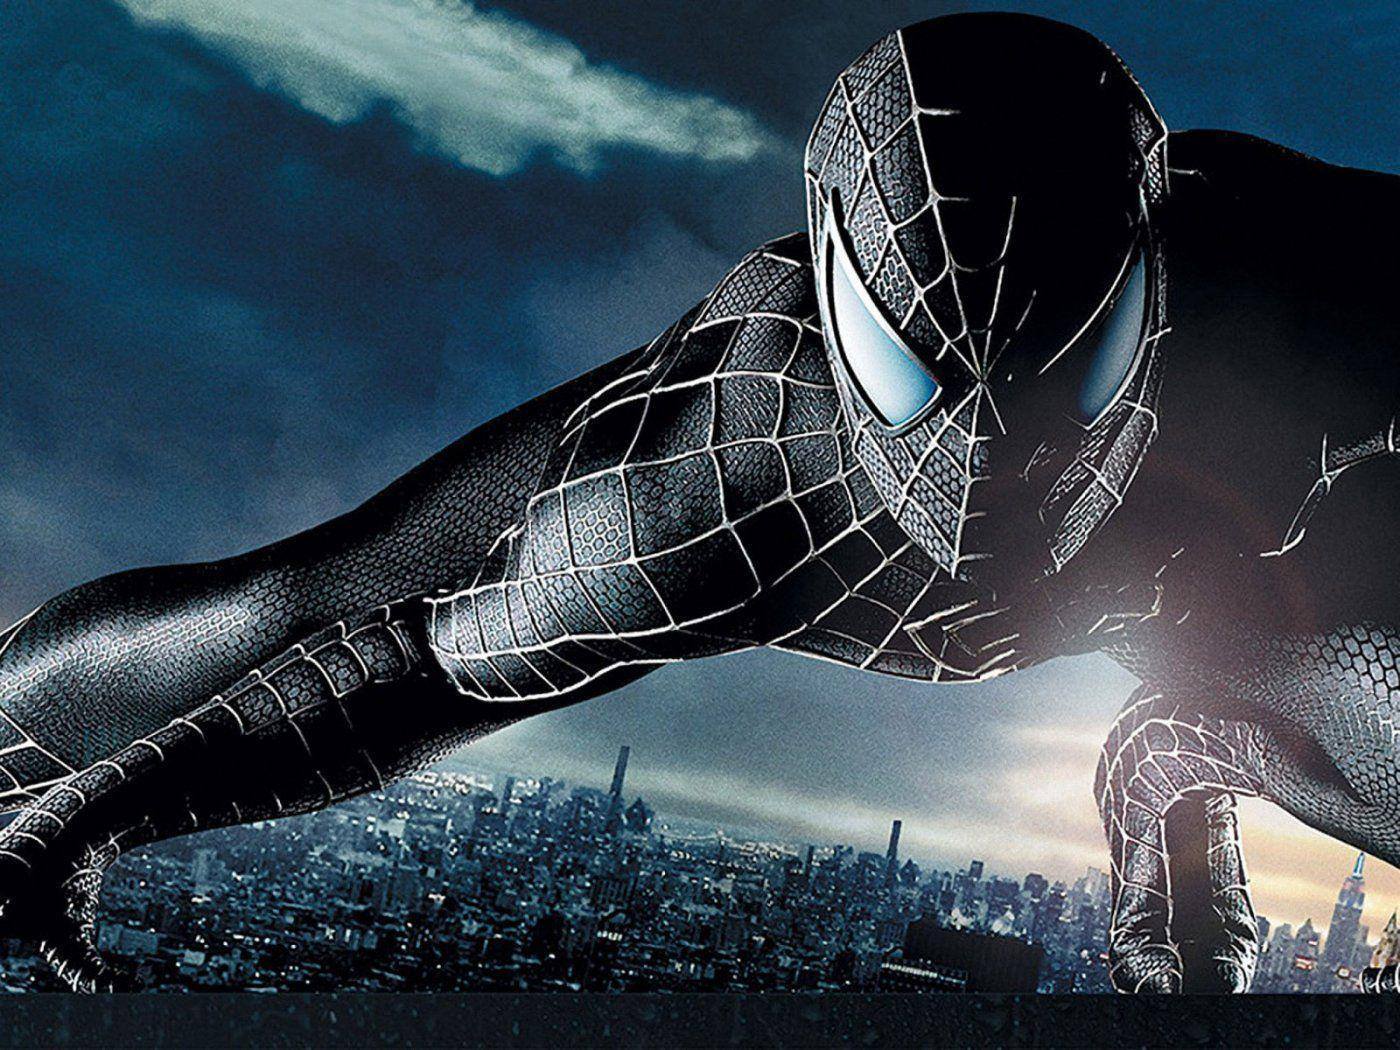 Spider Man Image Download: Download Spider Man Wallpaper (109 Wallpapers)